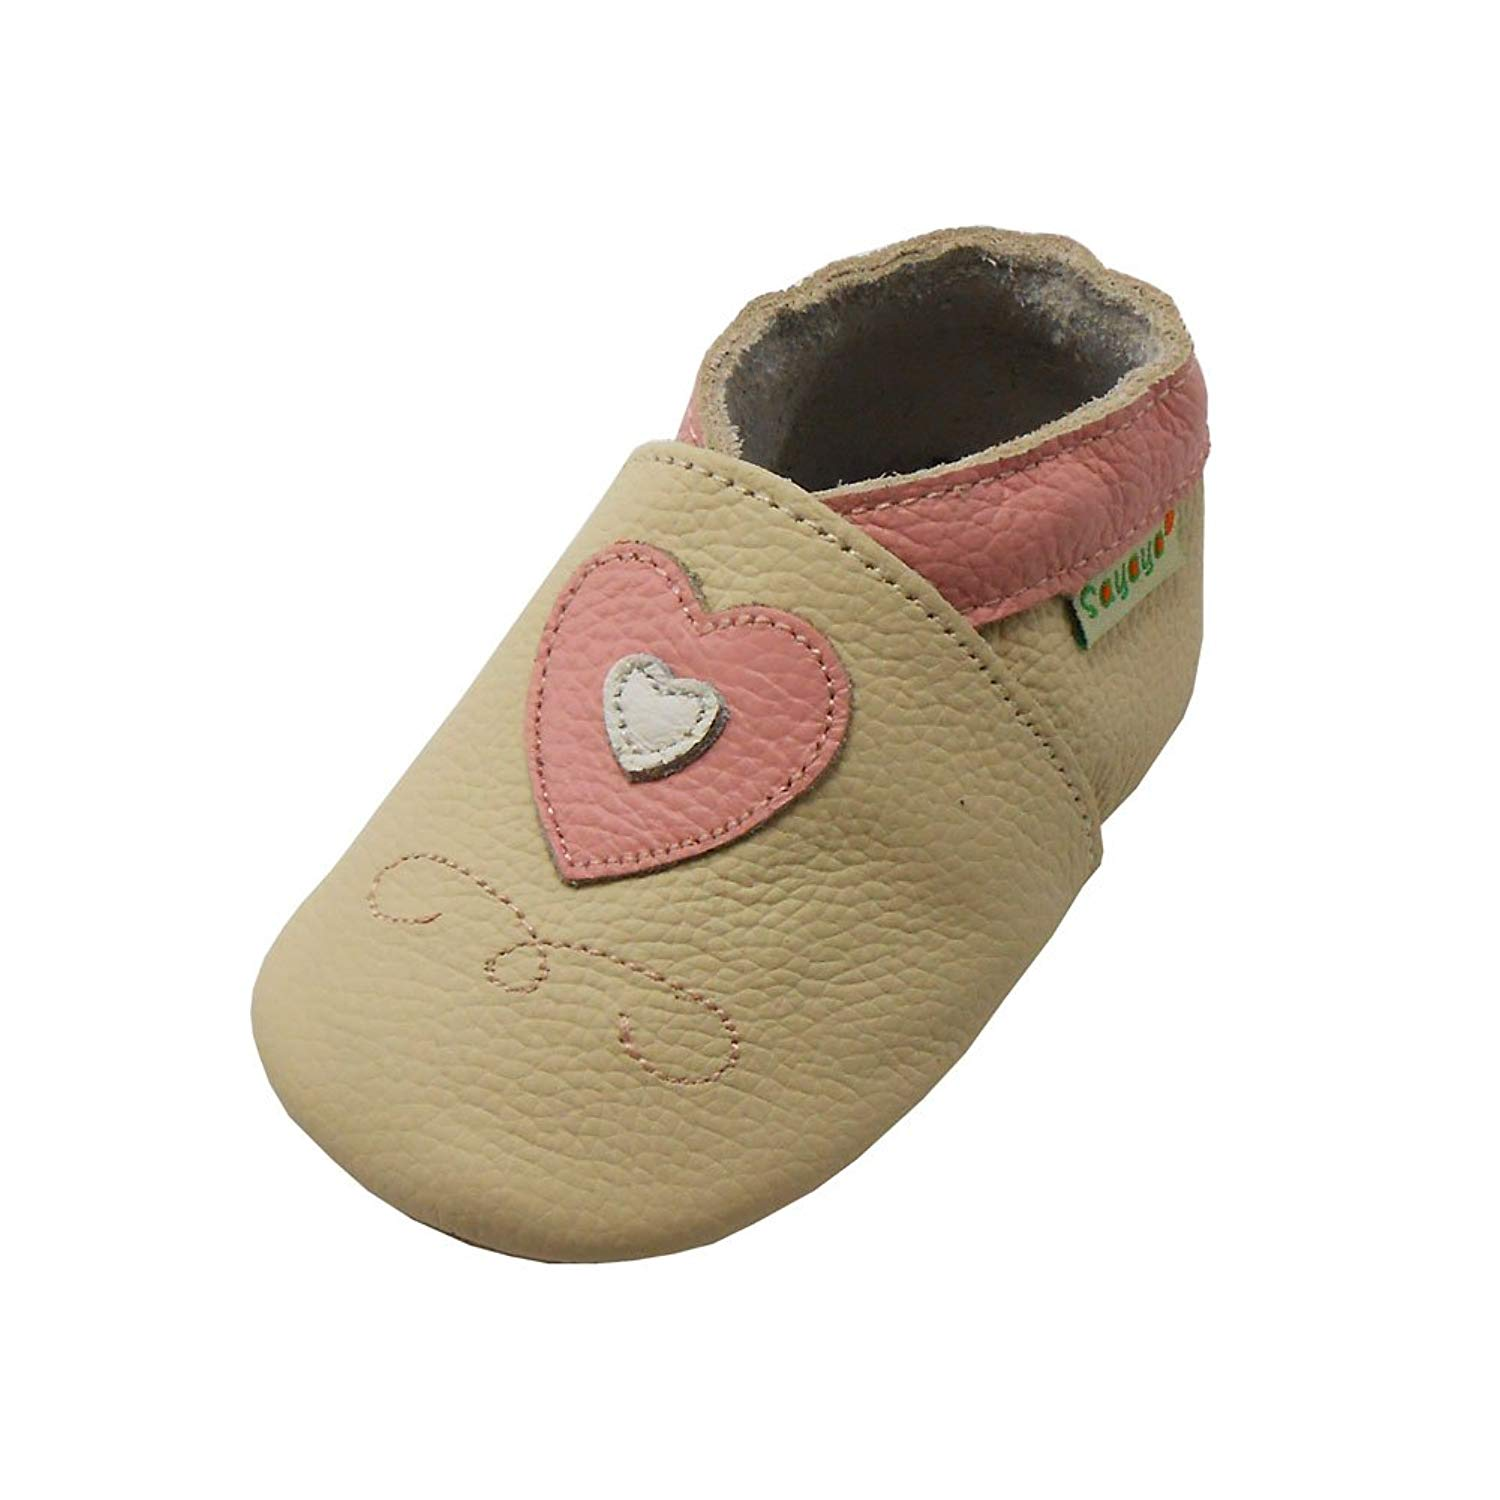 Sayoyo Baby Cute Mushrooms Soft Sole Leather Baby Shoes Baby Moccasins